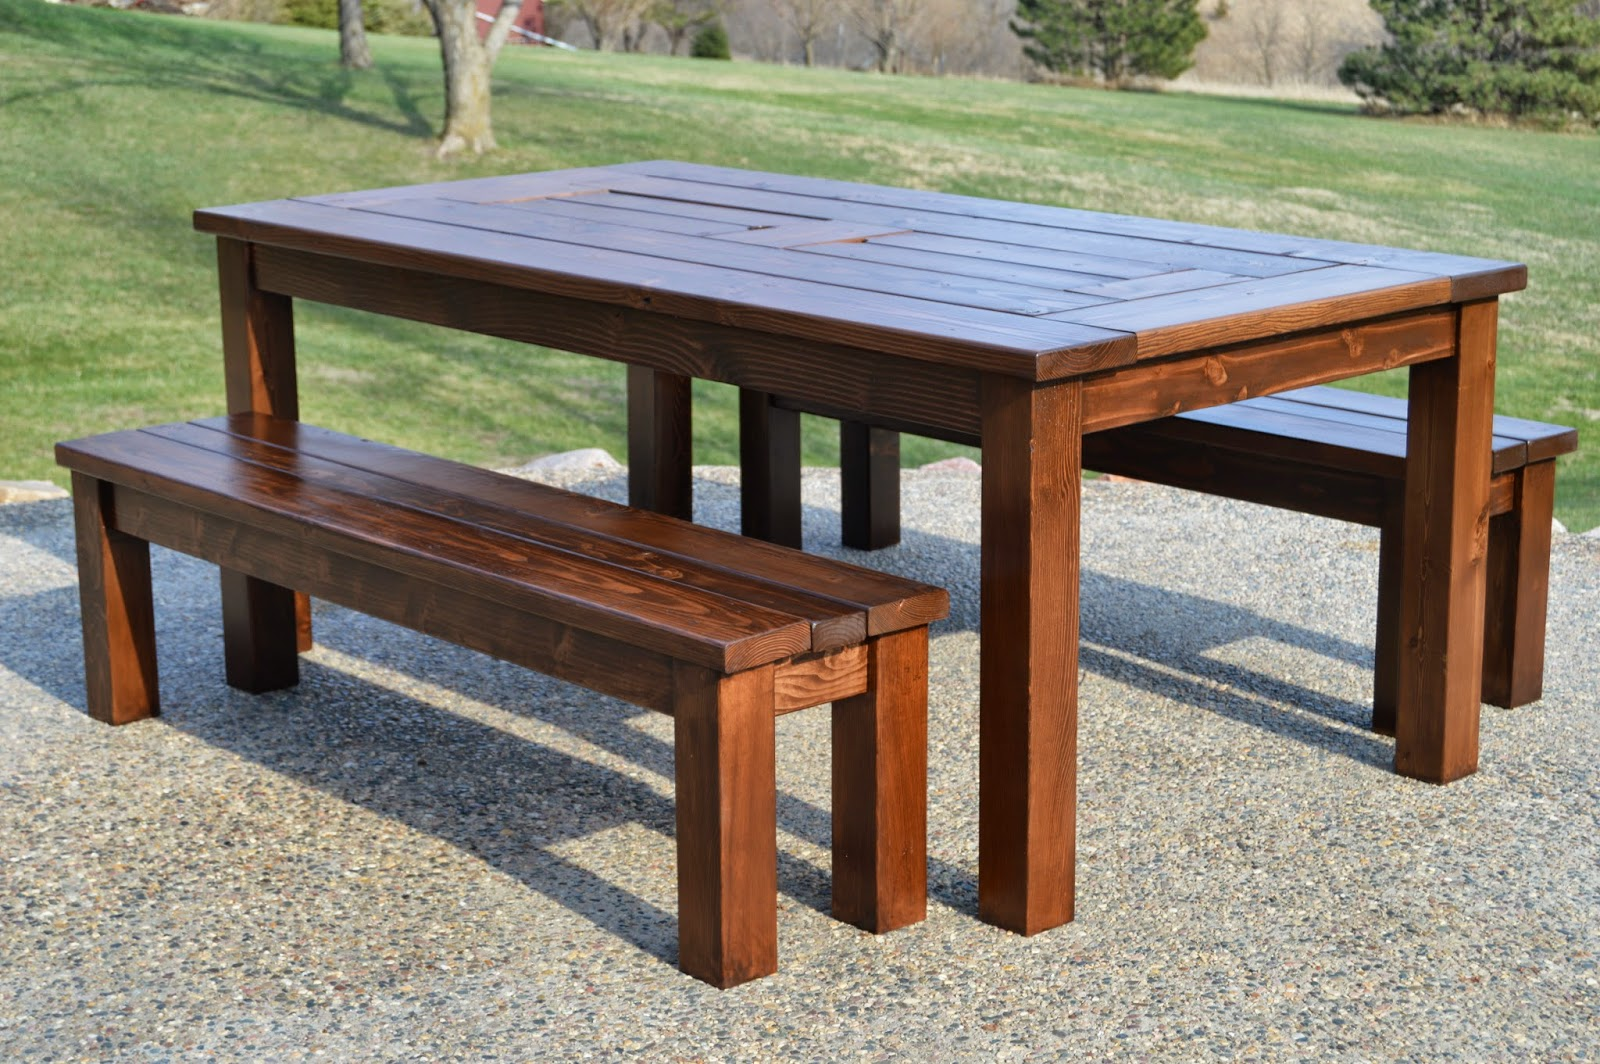 Remodelaholic build a patio table with built in ice boxes for Patio table with built in cooler